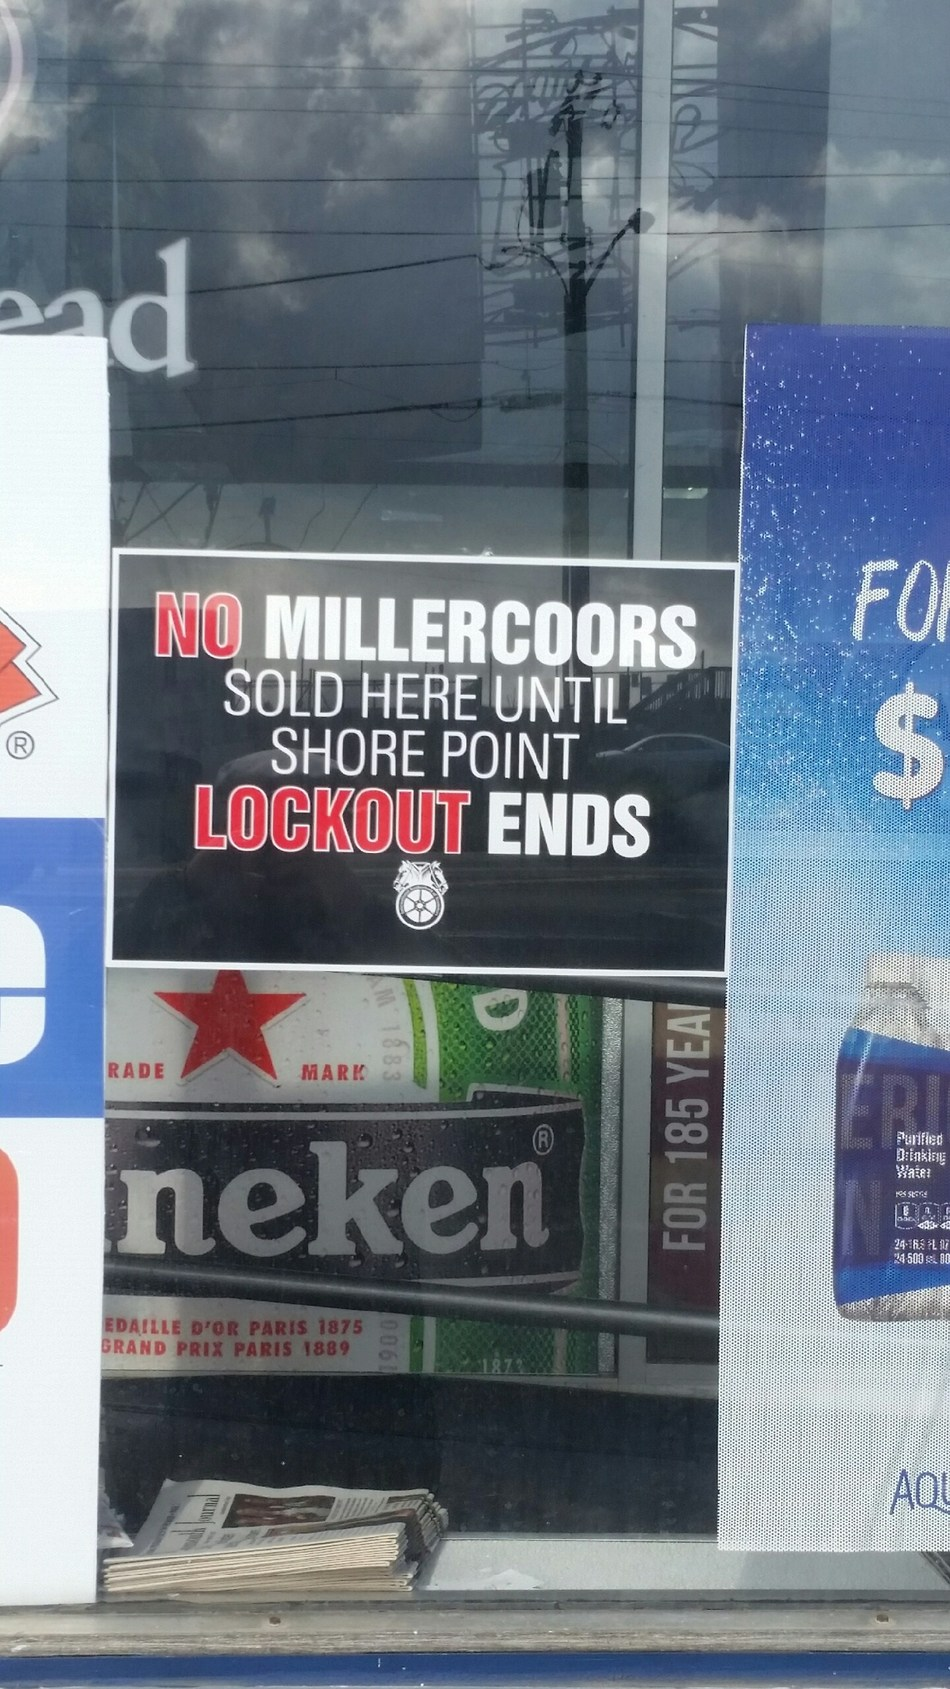 One of the many New Jersey retail establishments supporting Teamsters who were locked out by Shore Point Distribution.